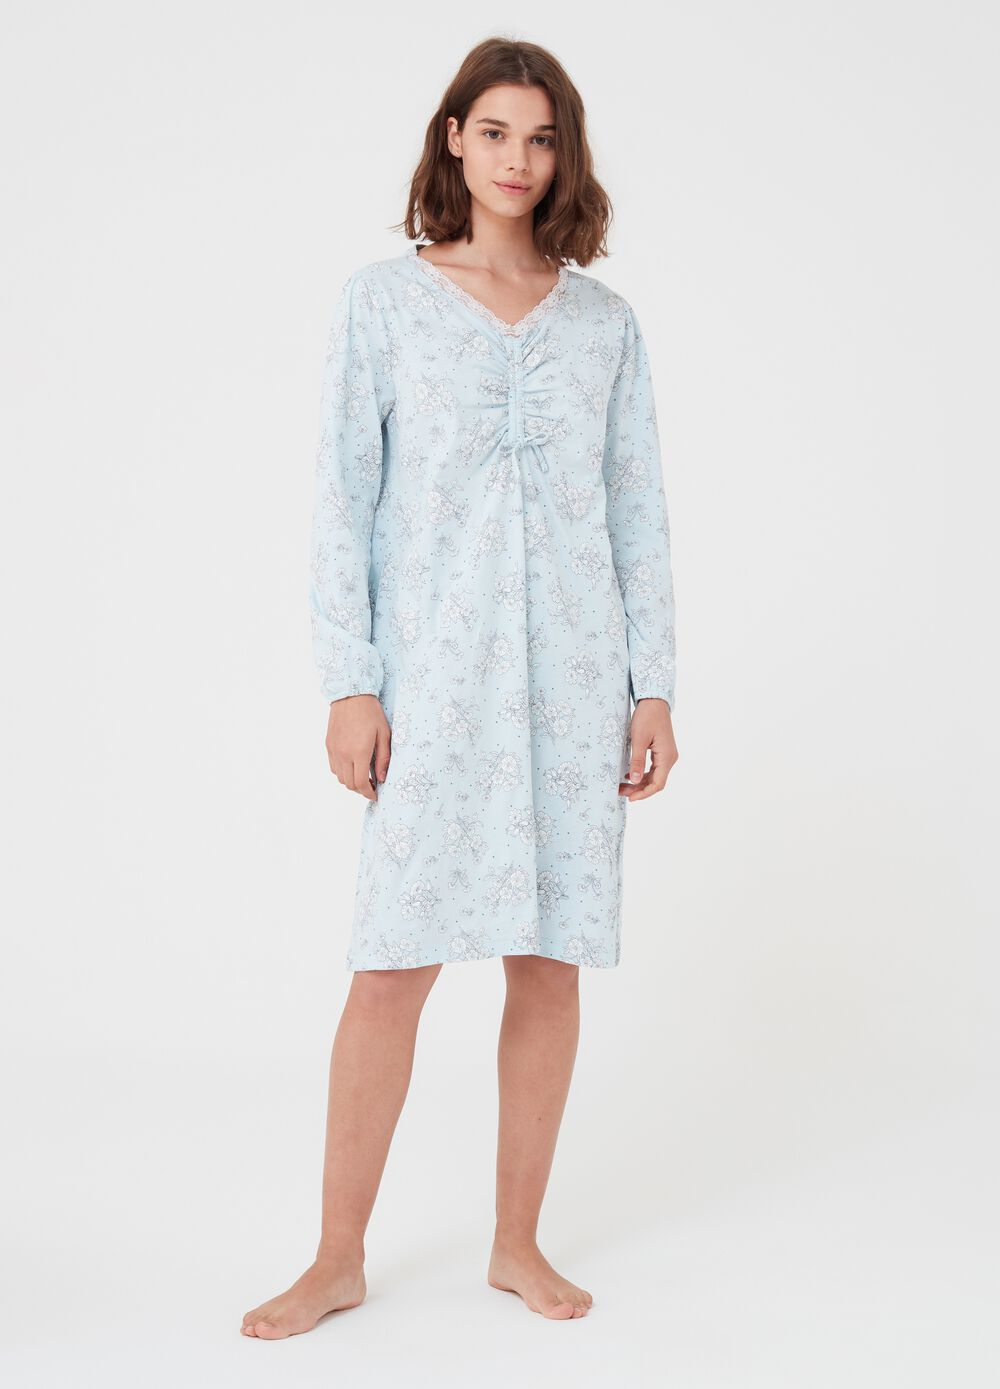 Floral and polka dot cotton nightshirt